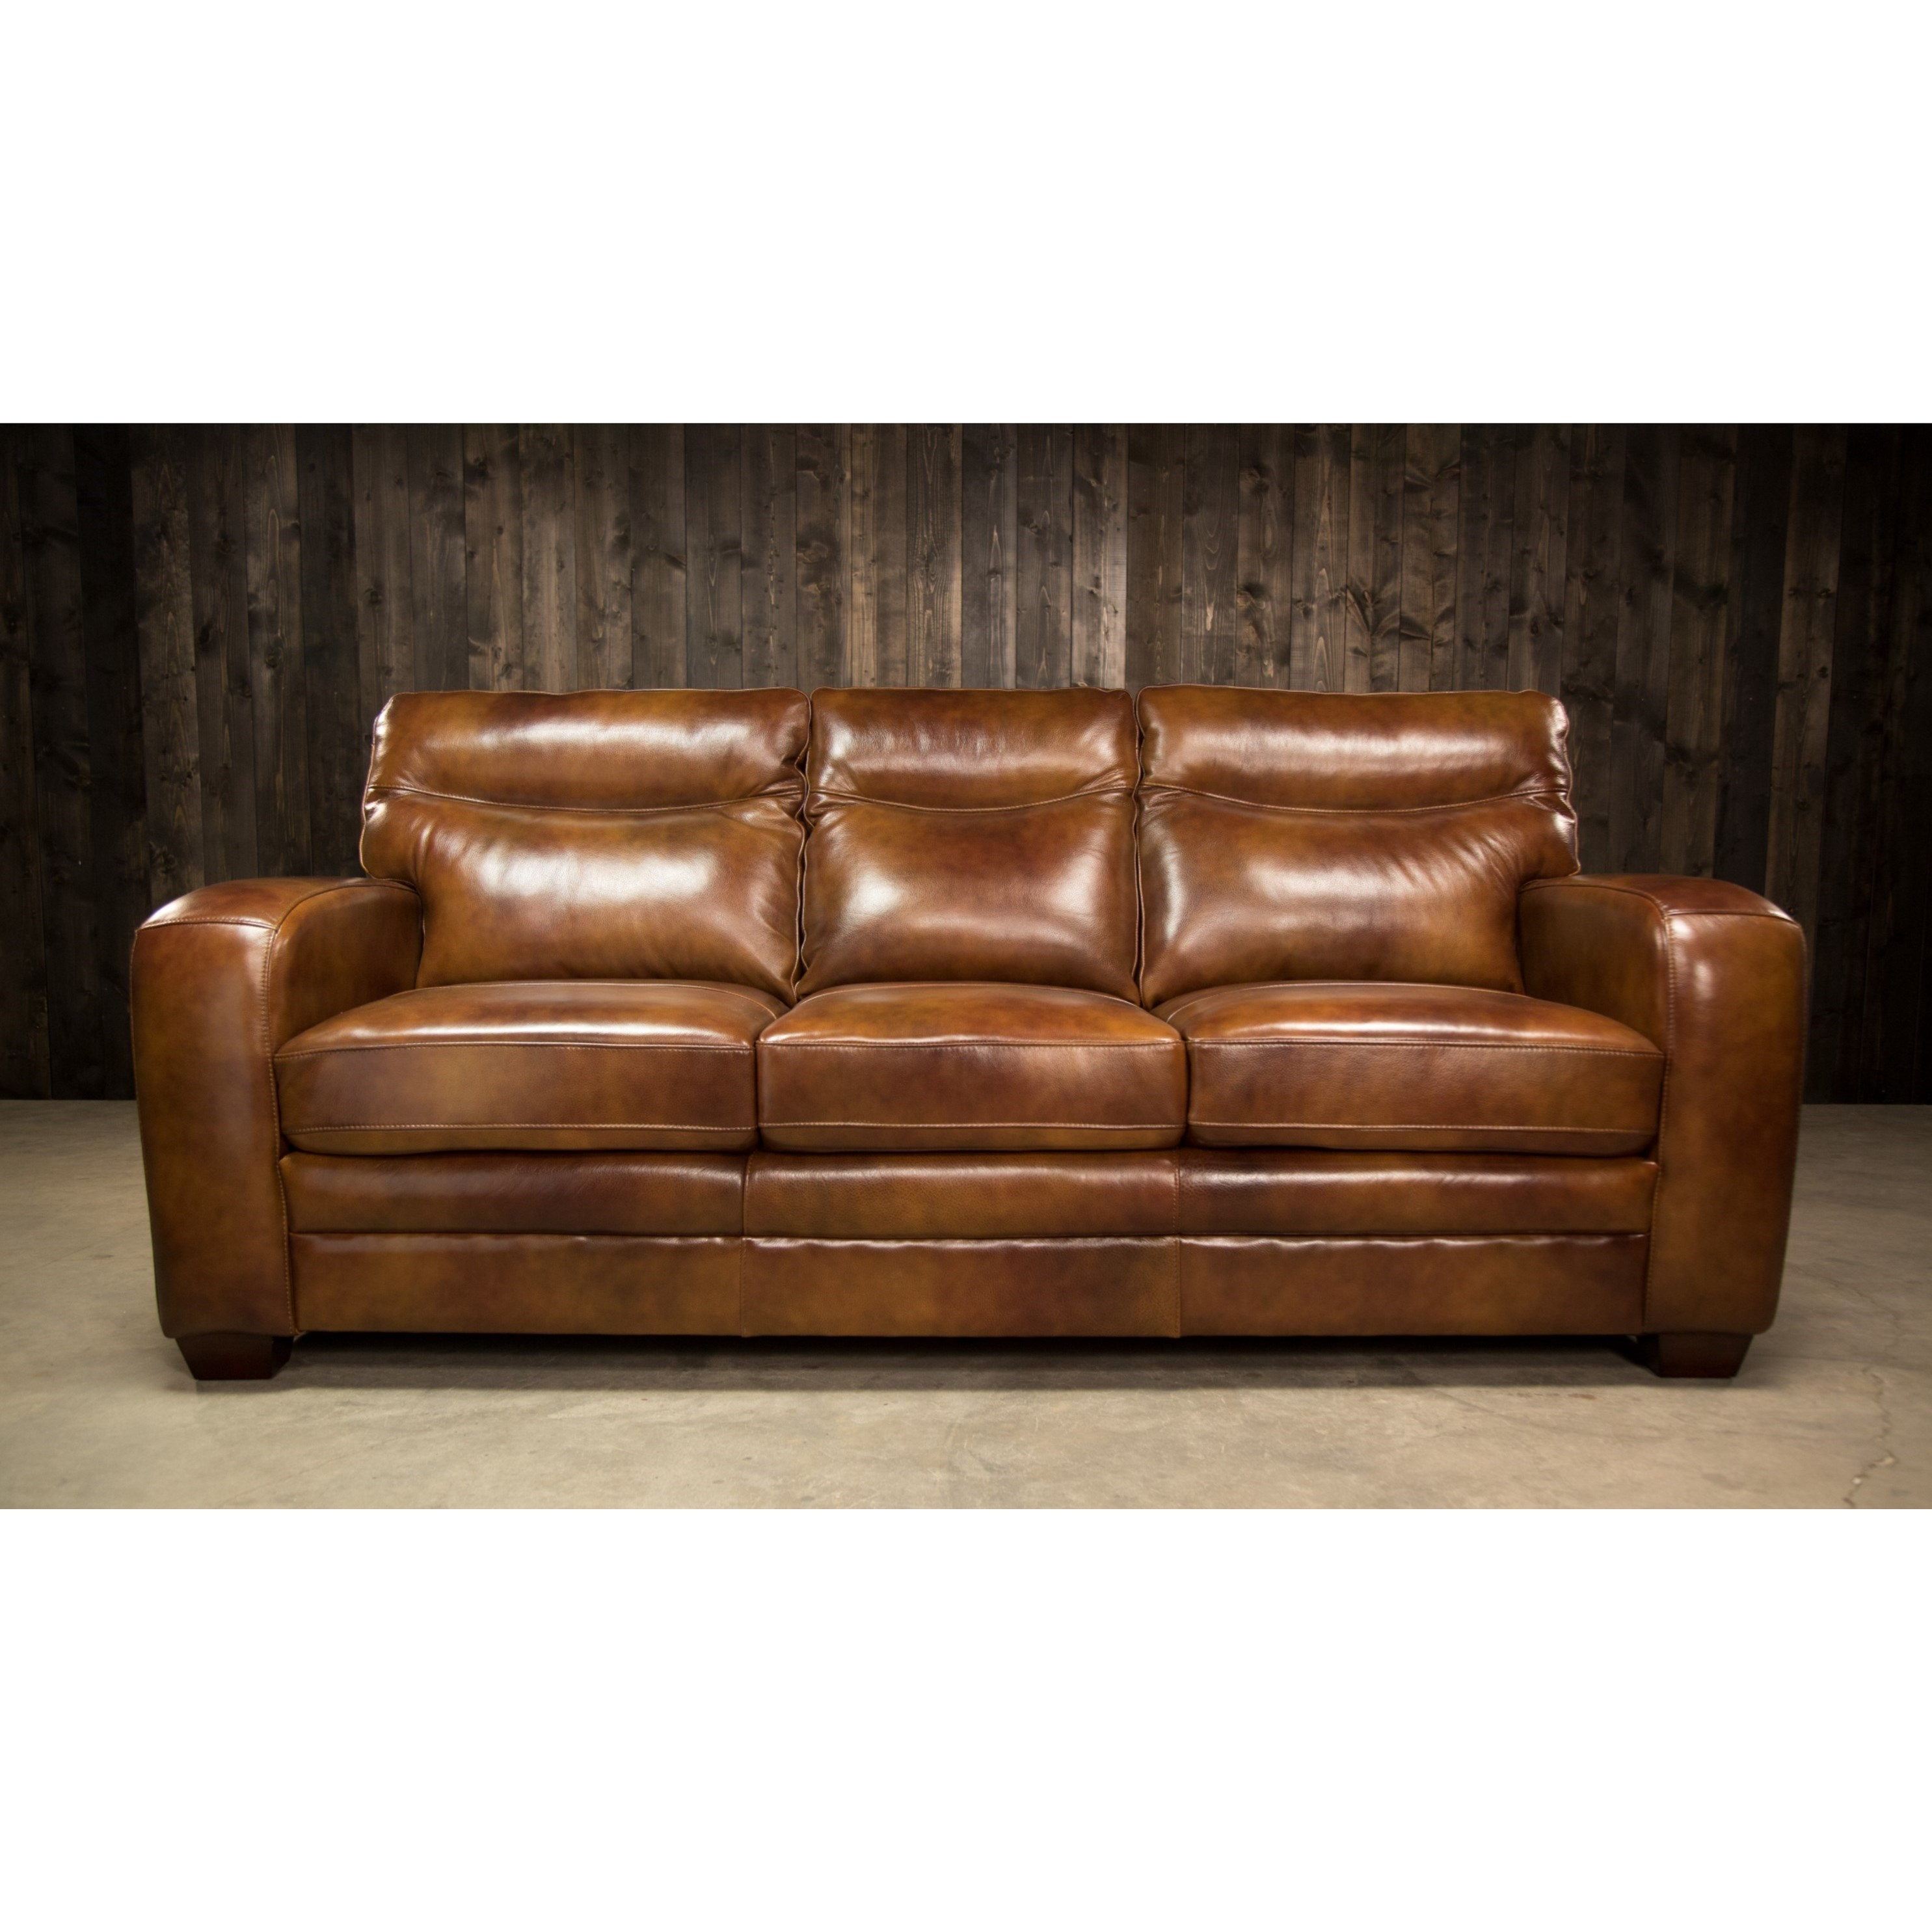 Elements international montebello leather sofa with low for Couch furniture